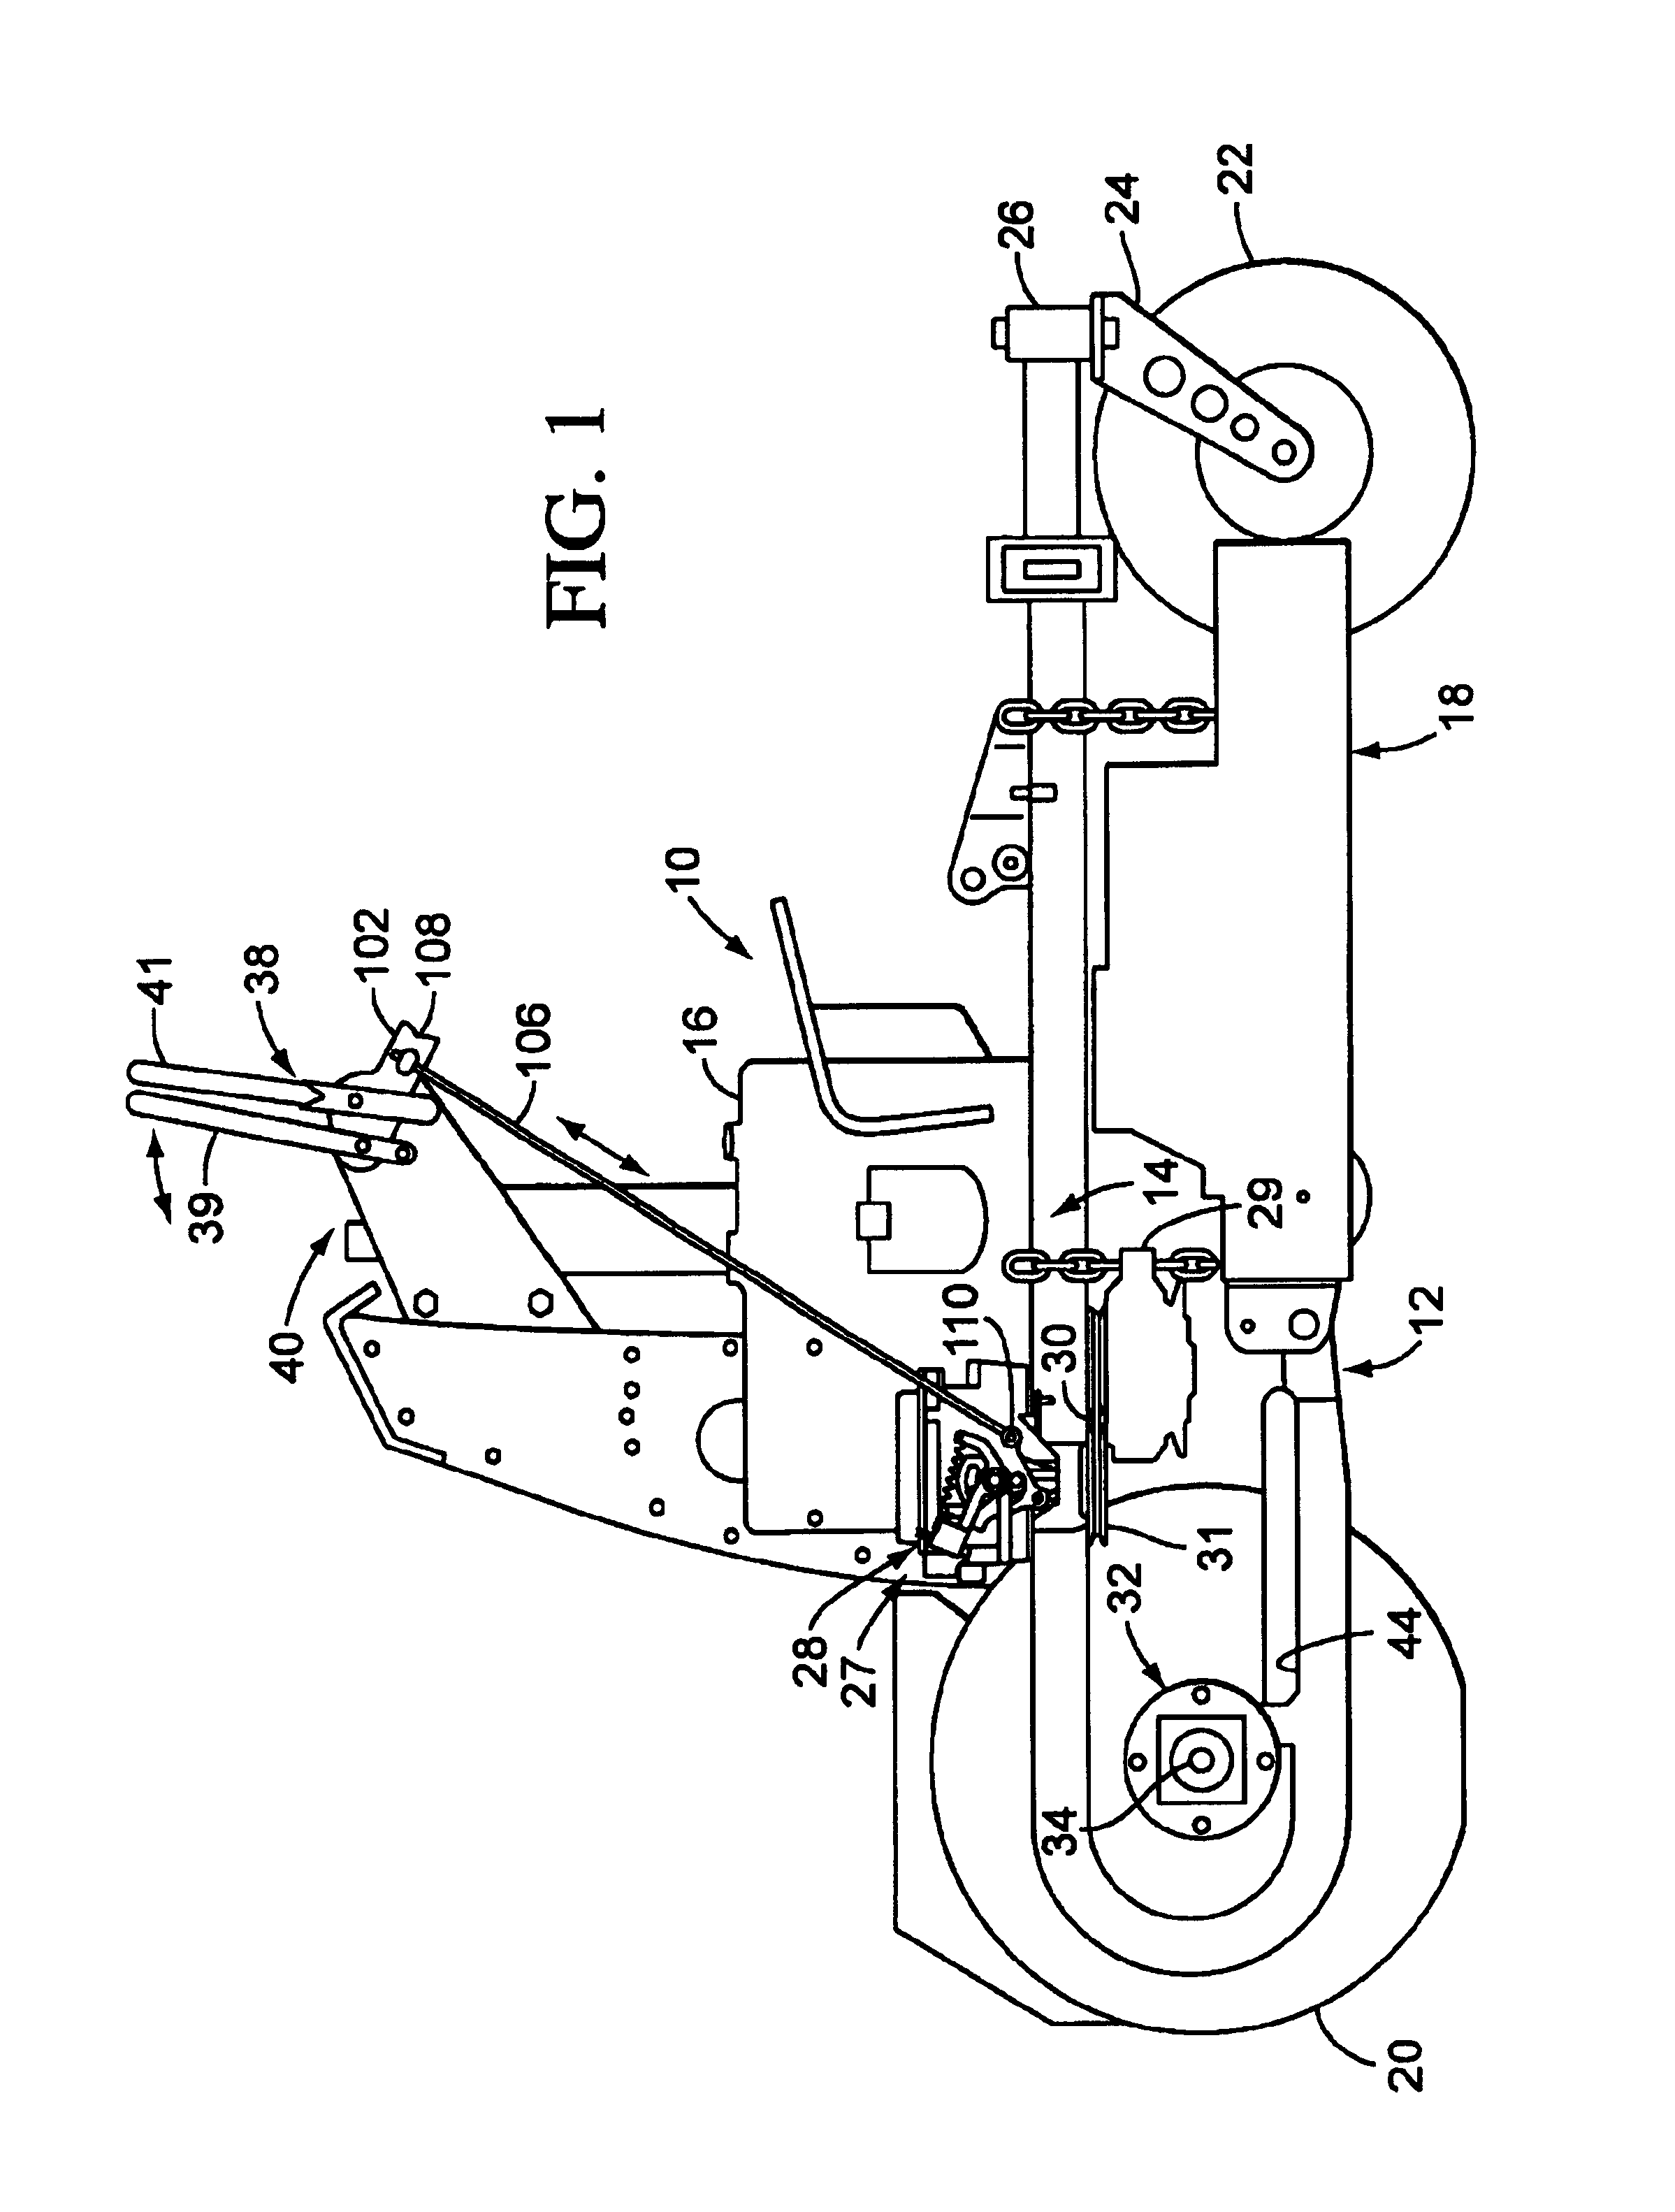 Mustang Al 306 additionally US6935106 furthermore Deere La125 Parts Diagram also General 20concepts 20i moreover Manual Transmission Clutch Pedal Diagram. on hydrostatic transmission work